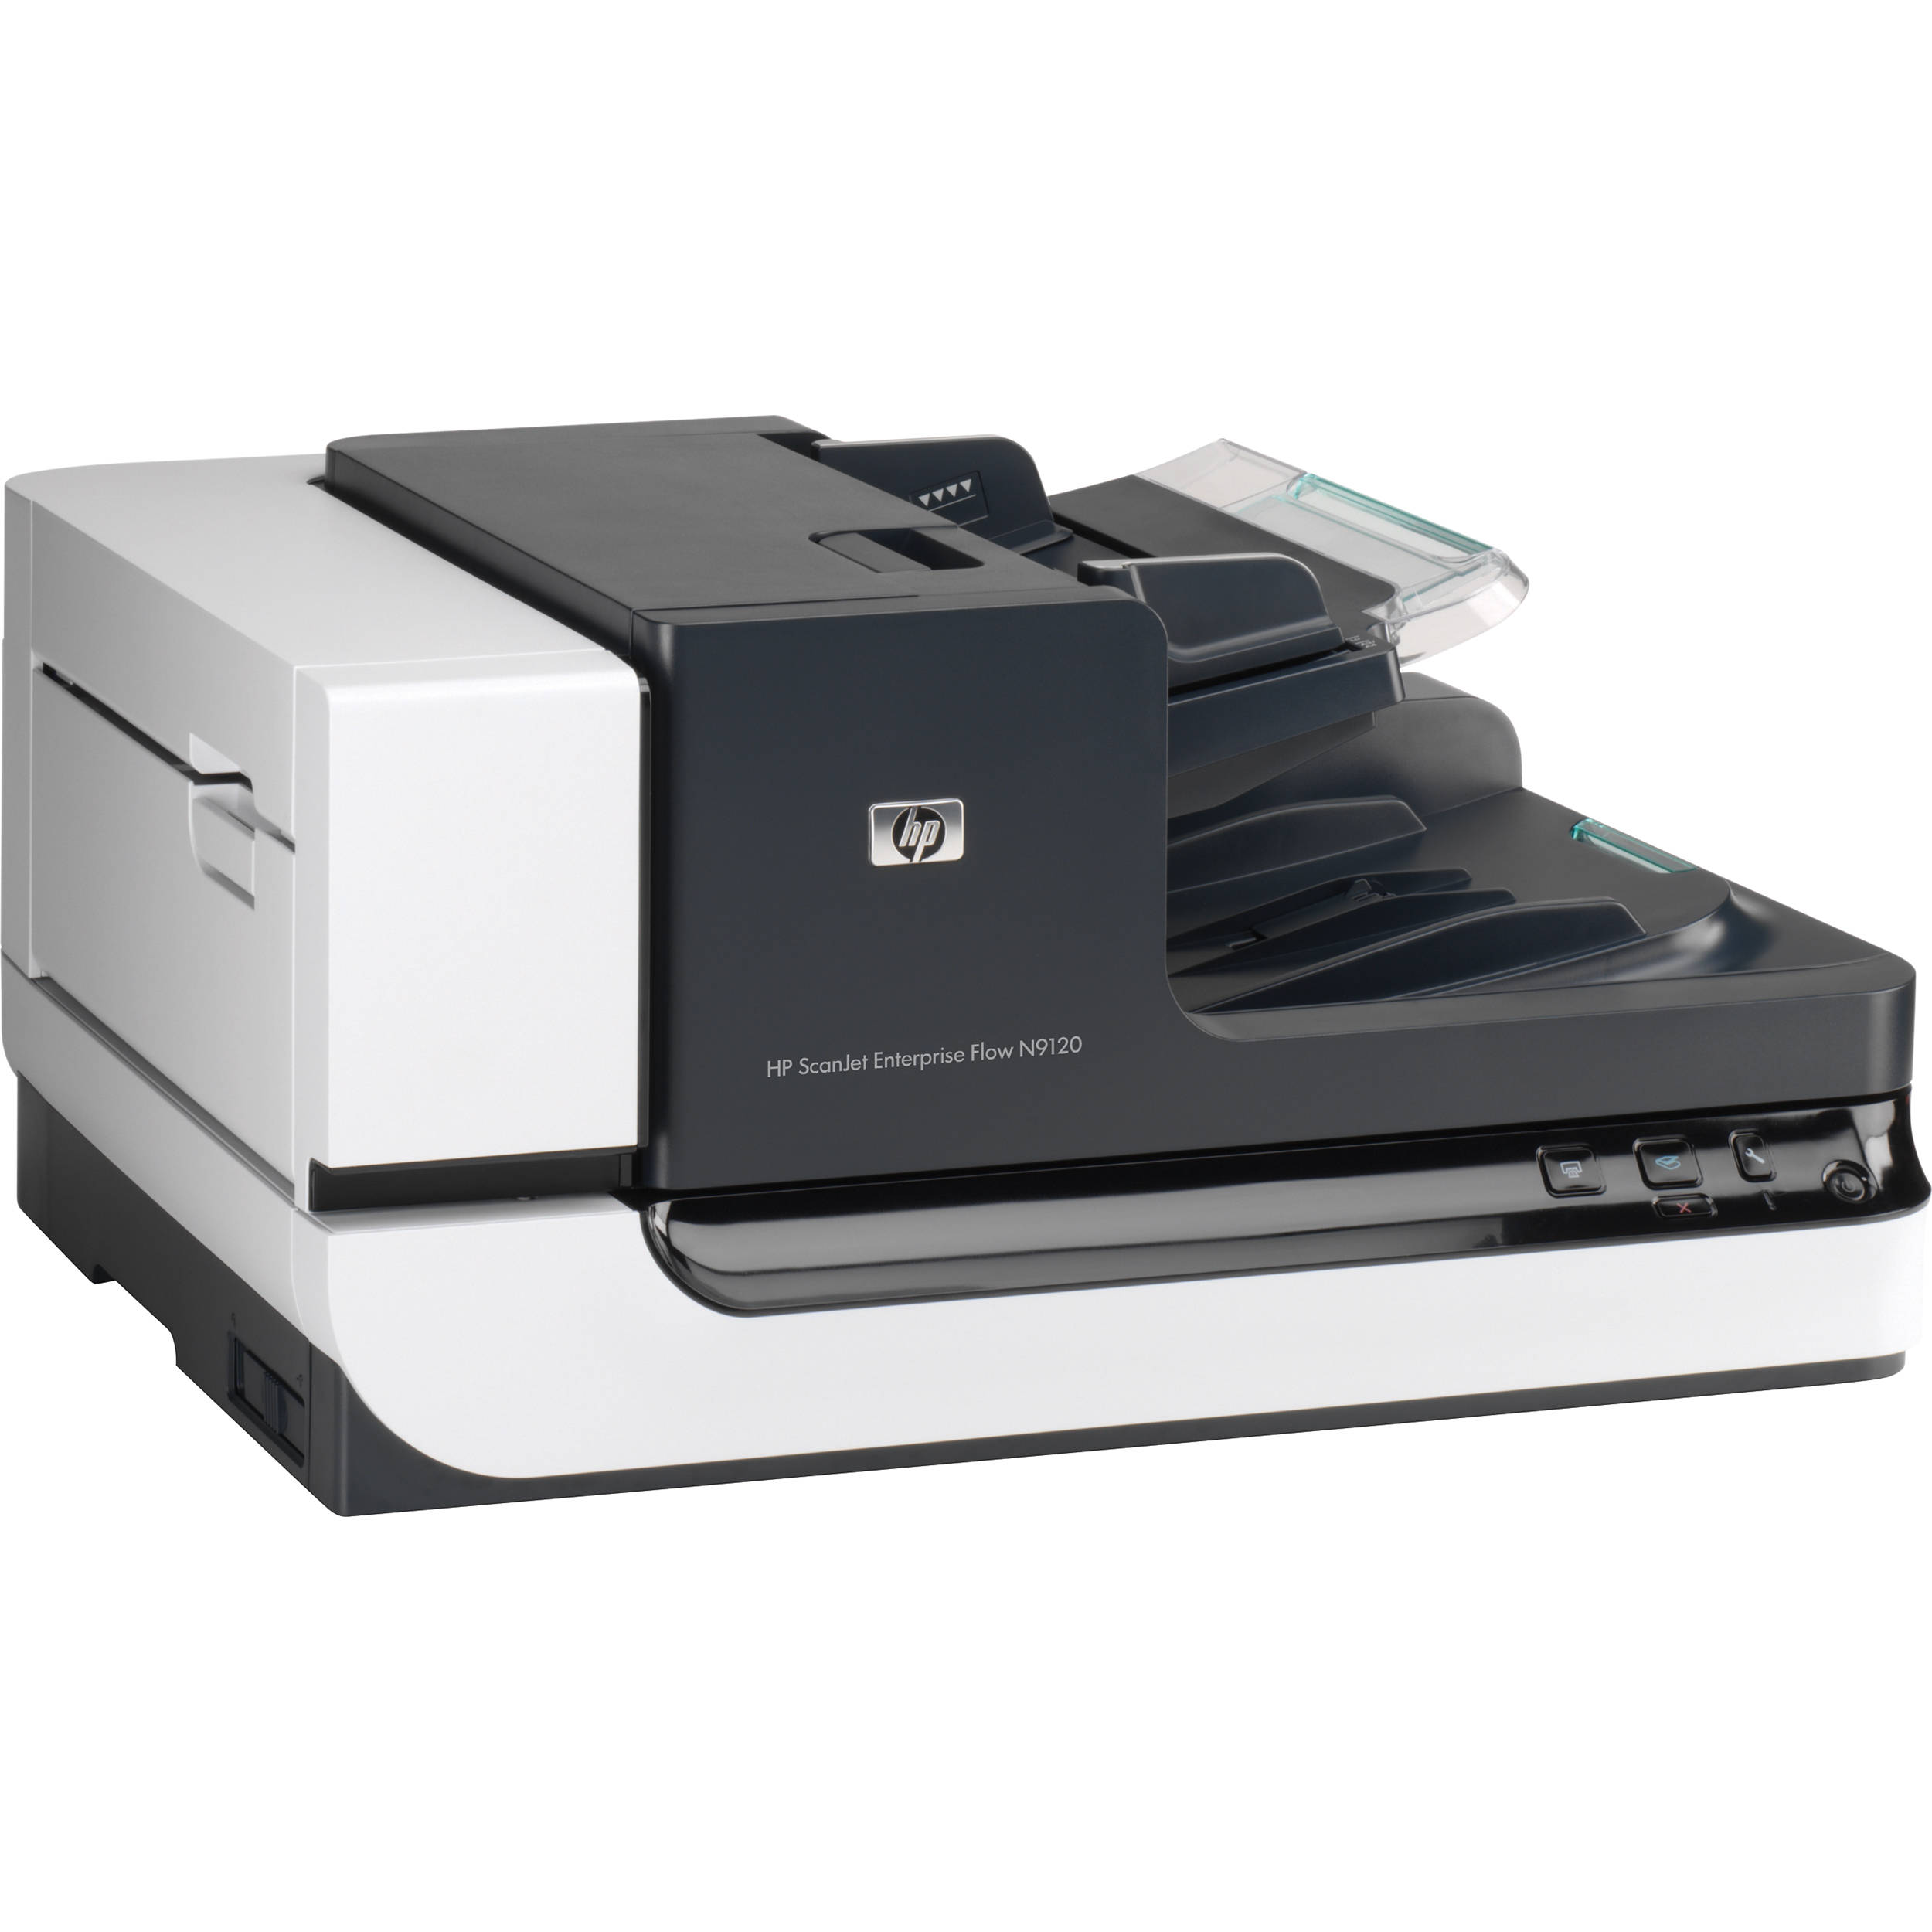 HP SCANJET N9120 SCANNER DRIVERS FOR WINDOWS 7